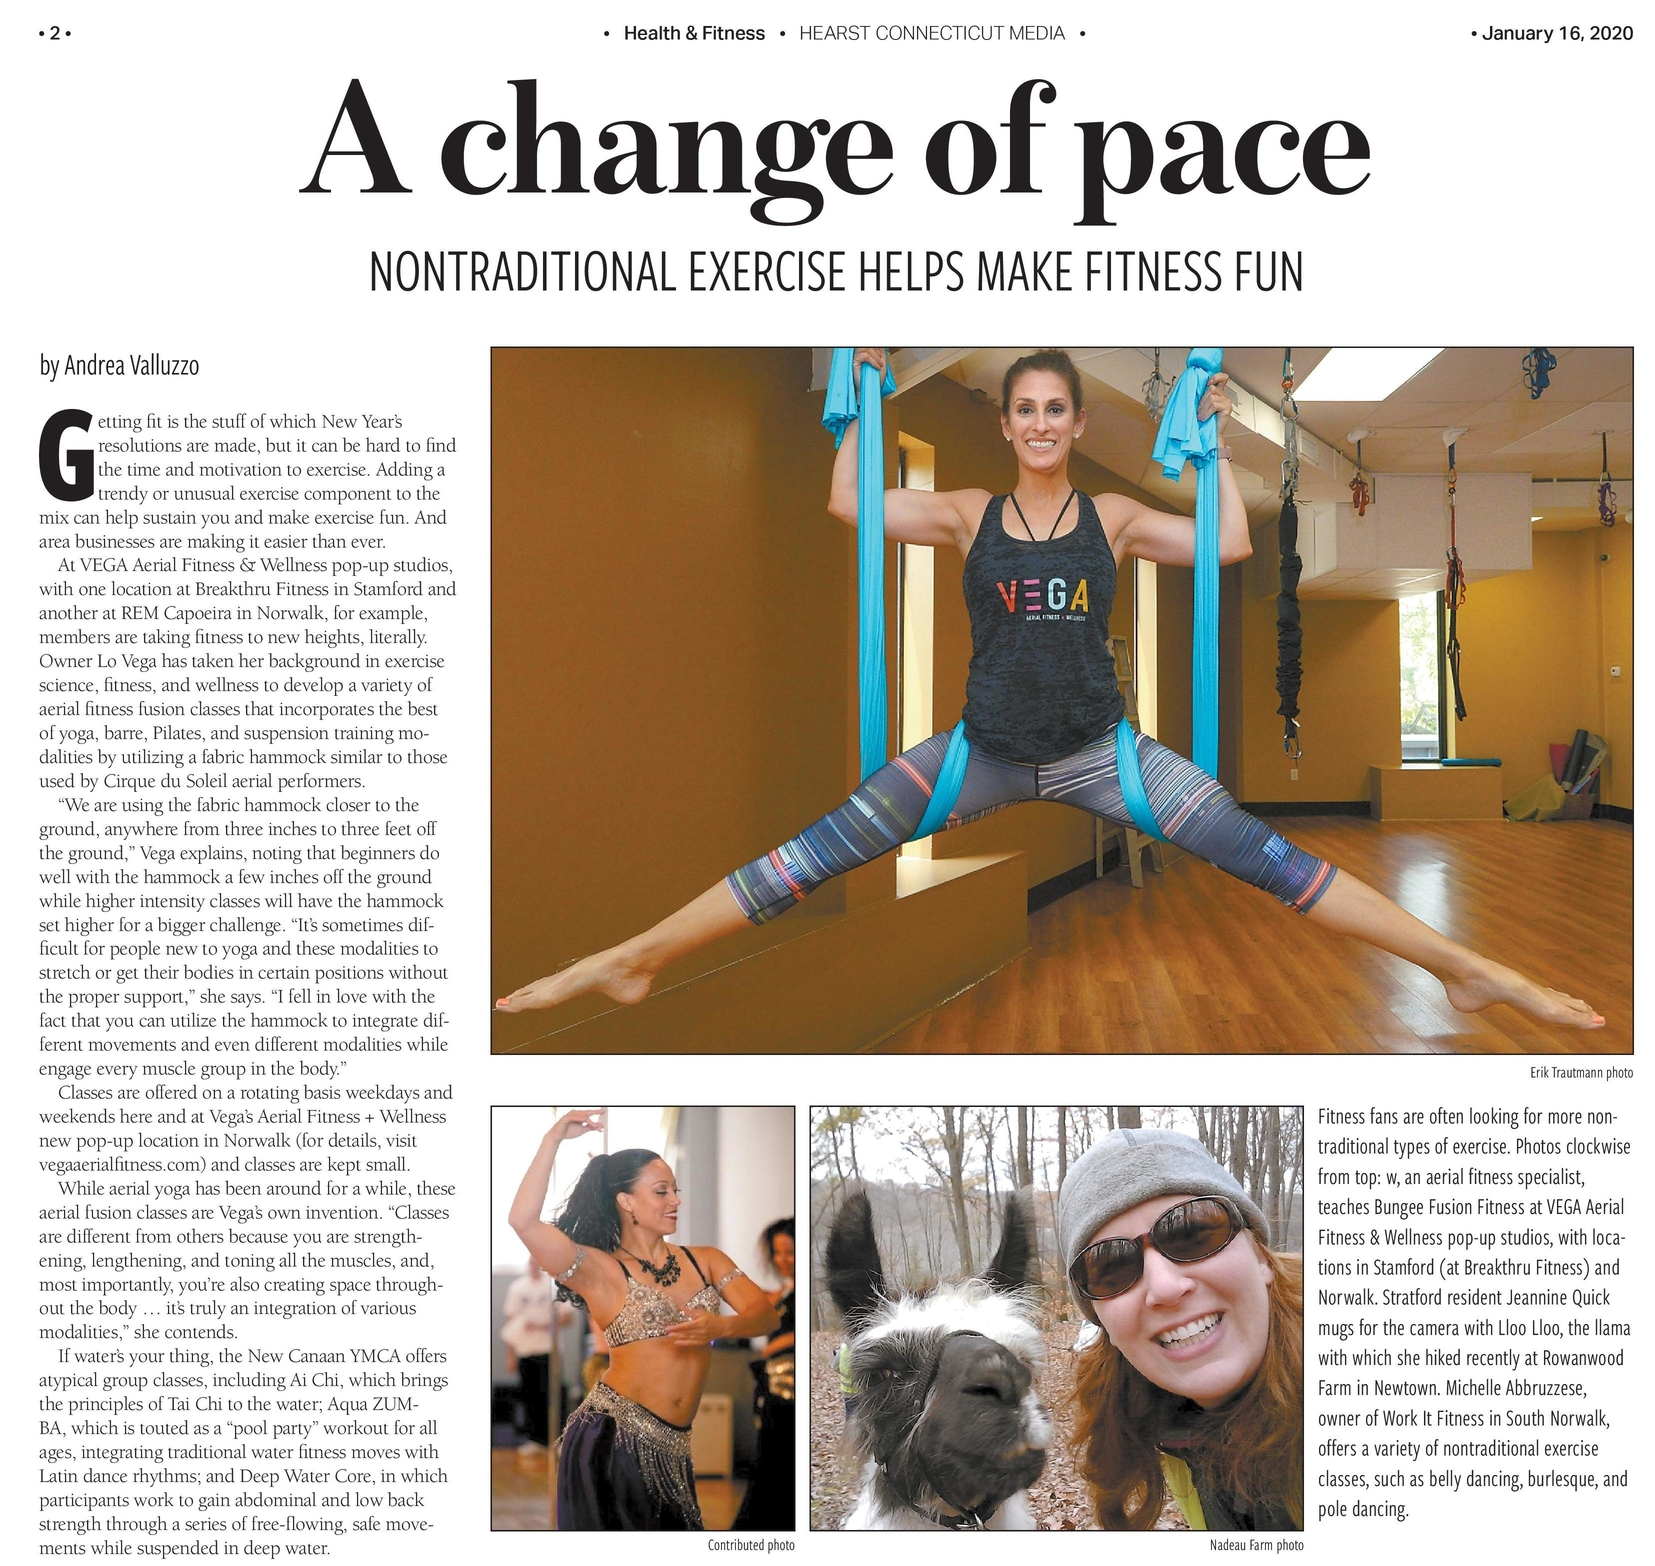 Pole Dancing in CT fitness article